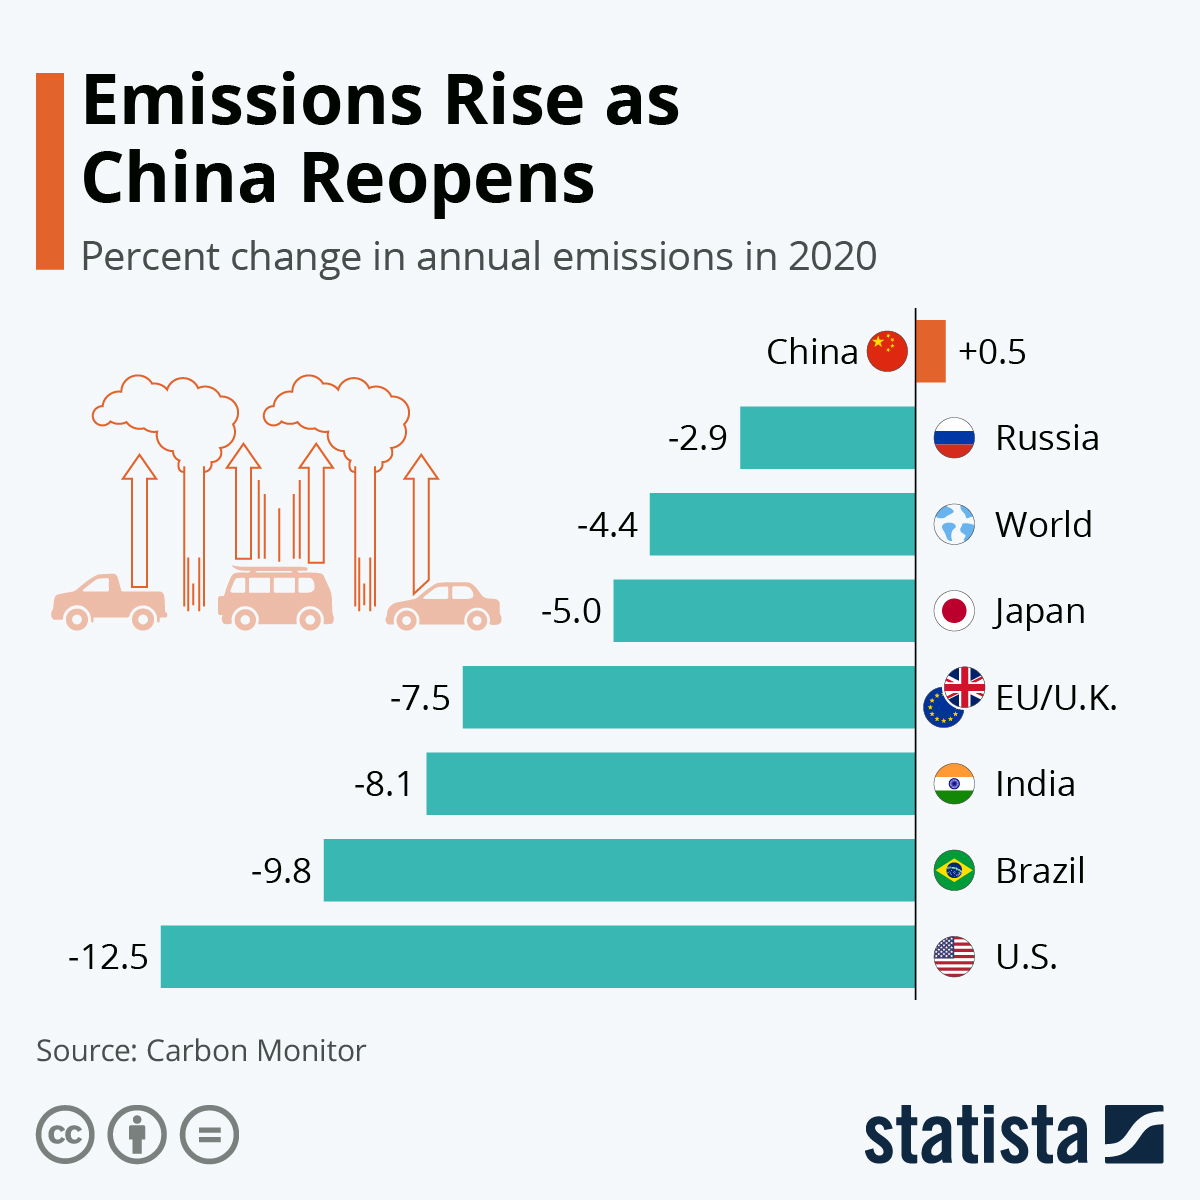 Emissions rise as China wakes up again